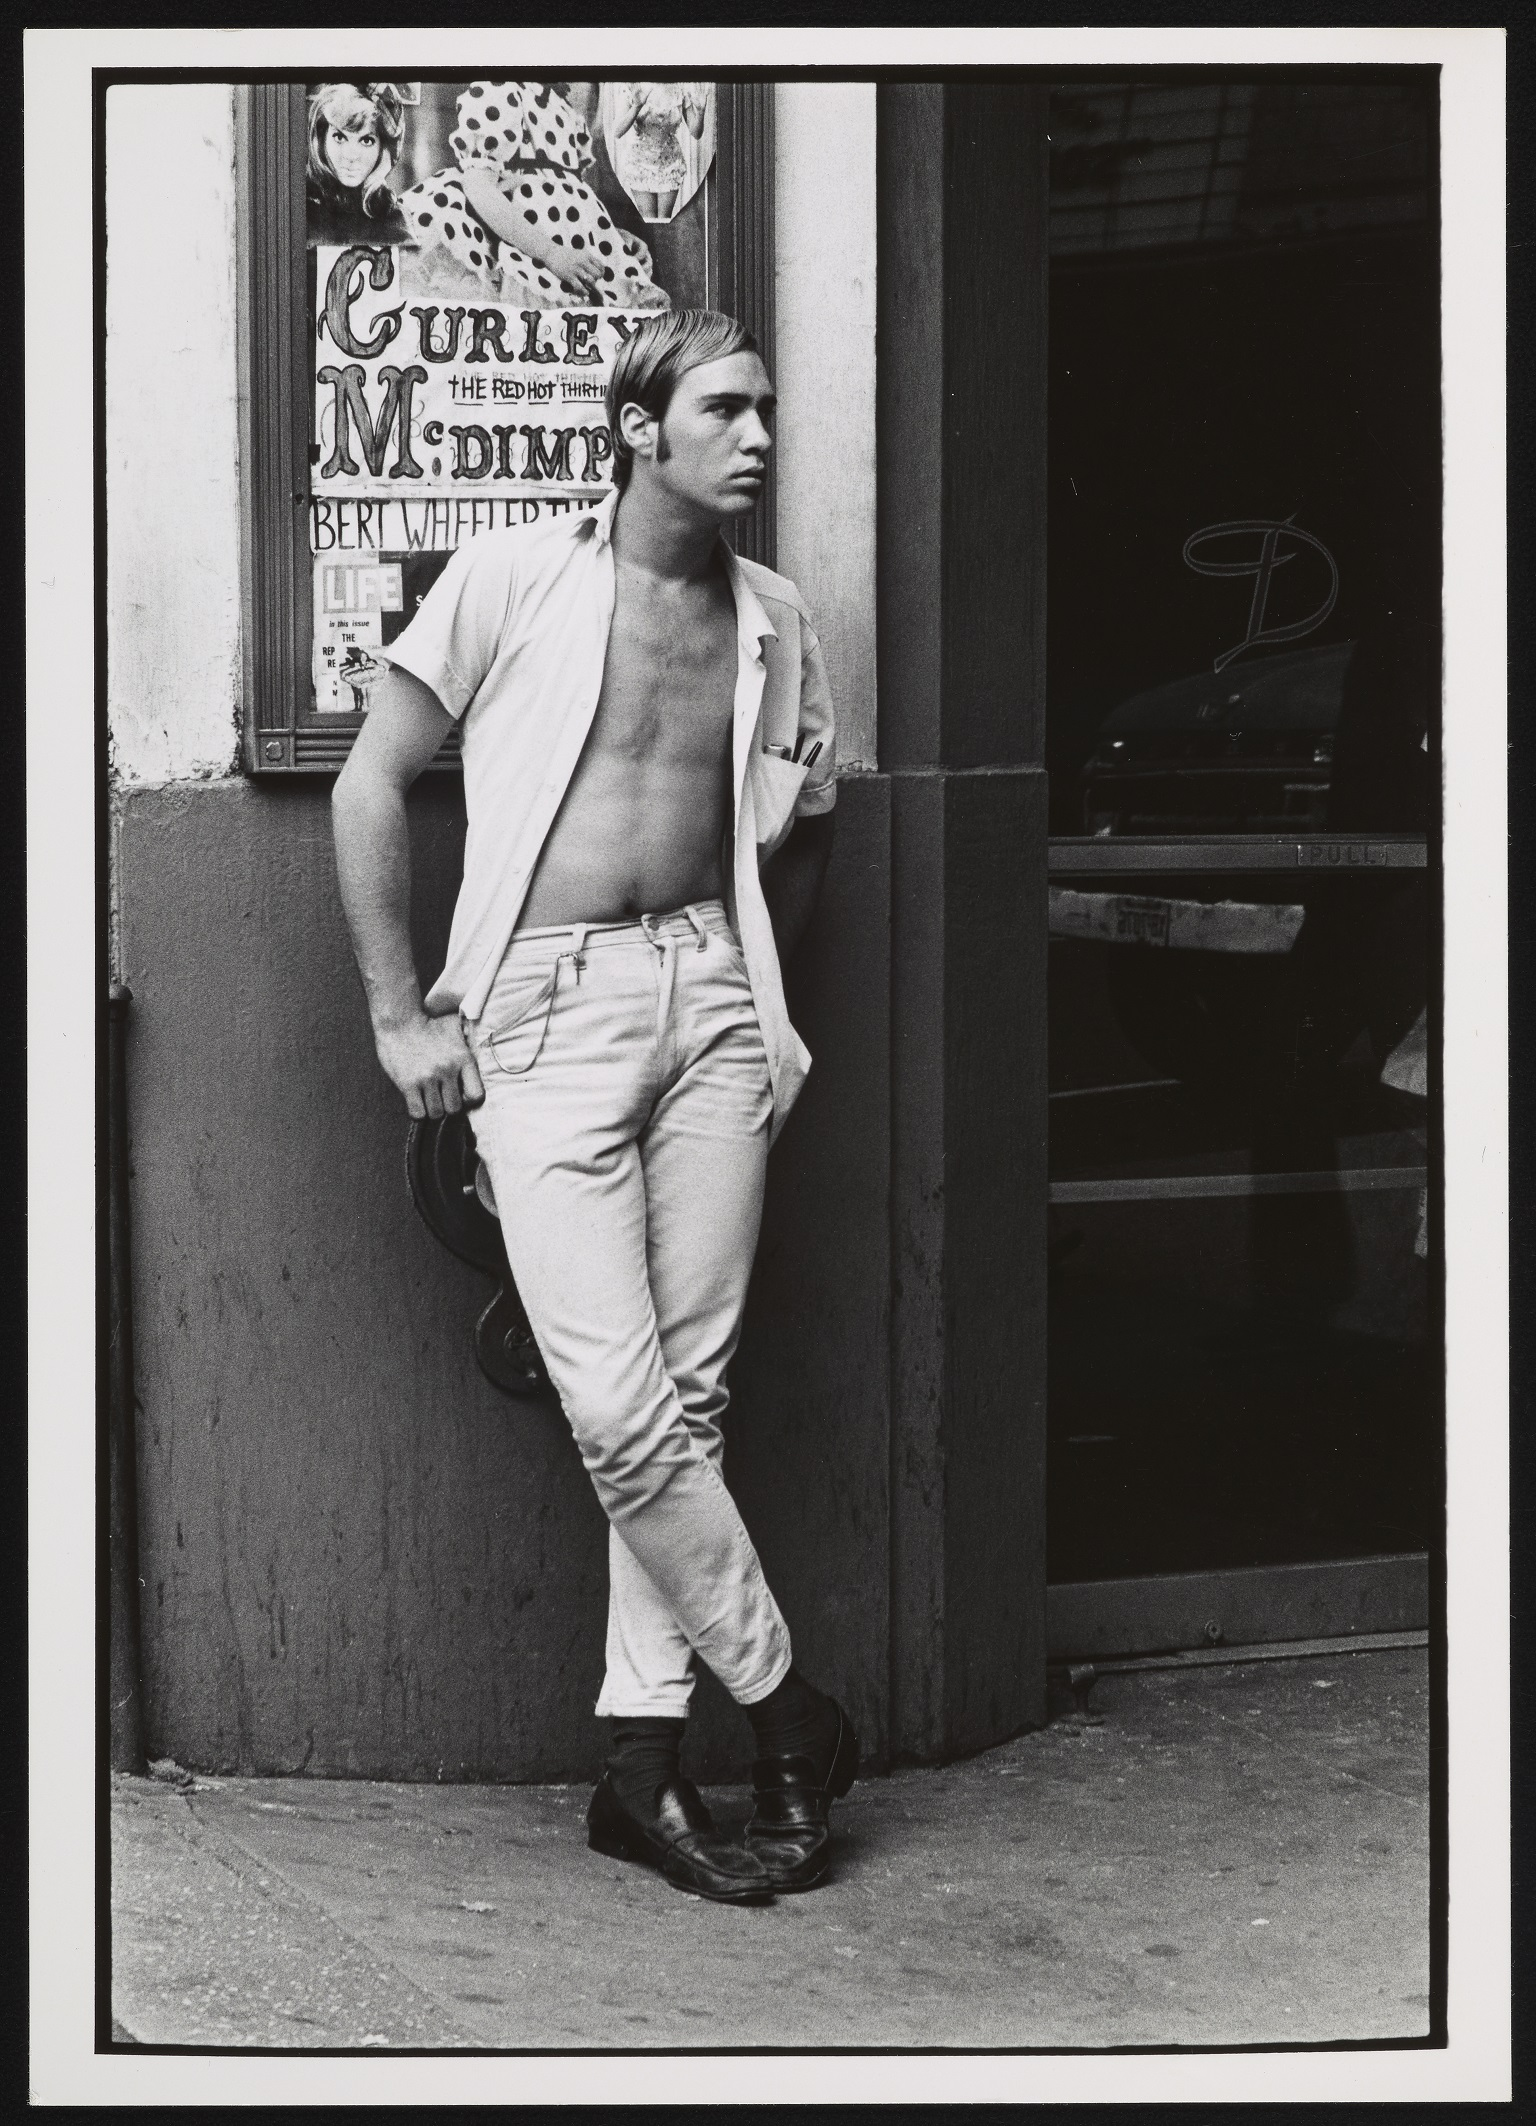 Man with unbuttoned shirt standing on street near strip club.